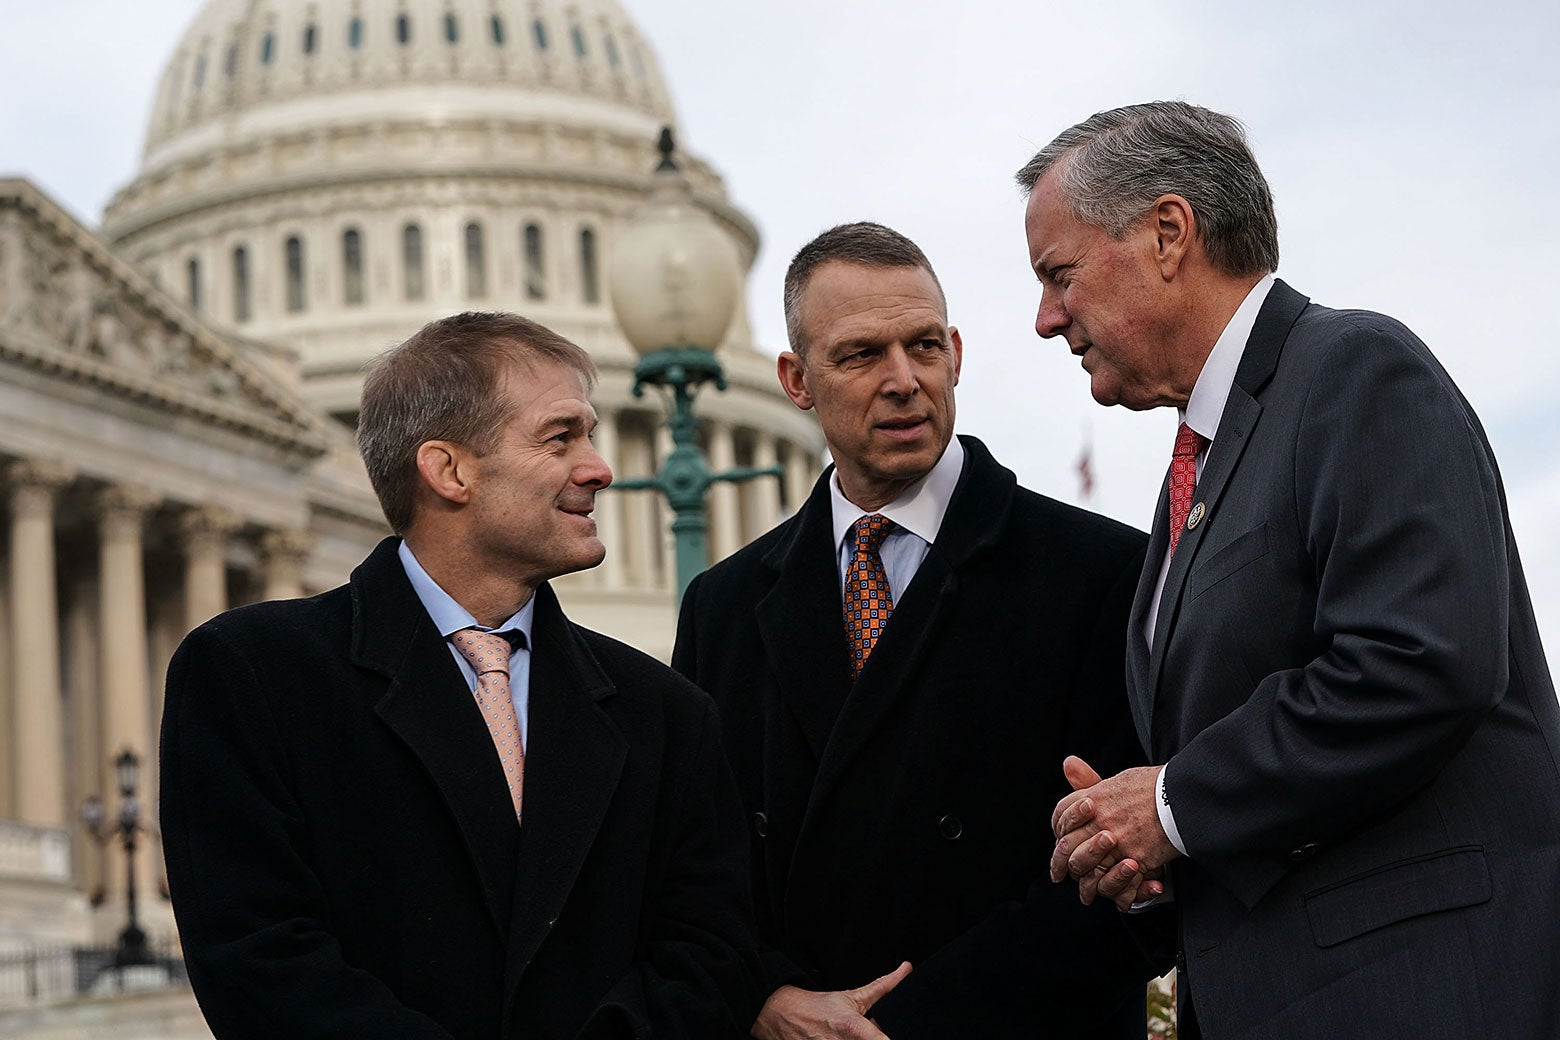 Three congressmen talk outside the Capitol Building.